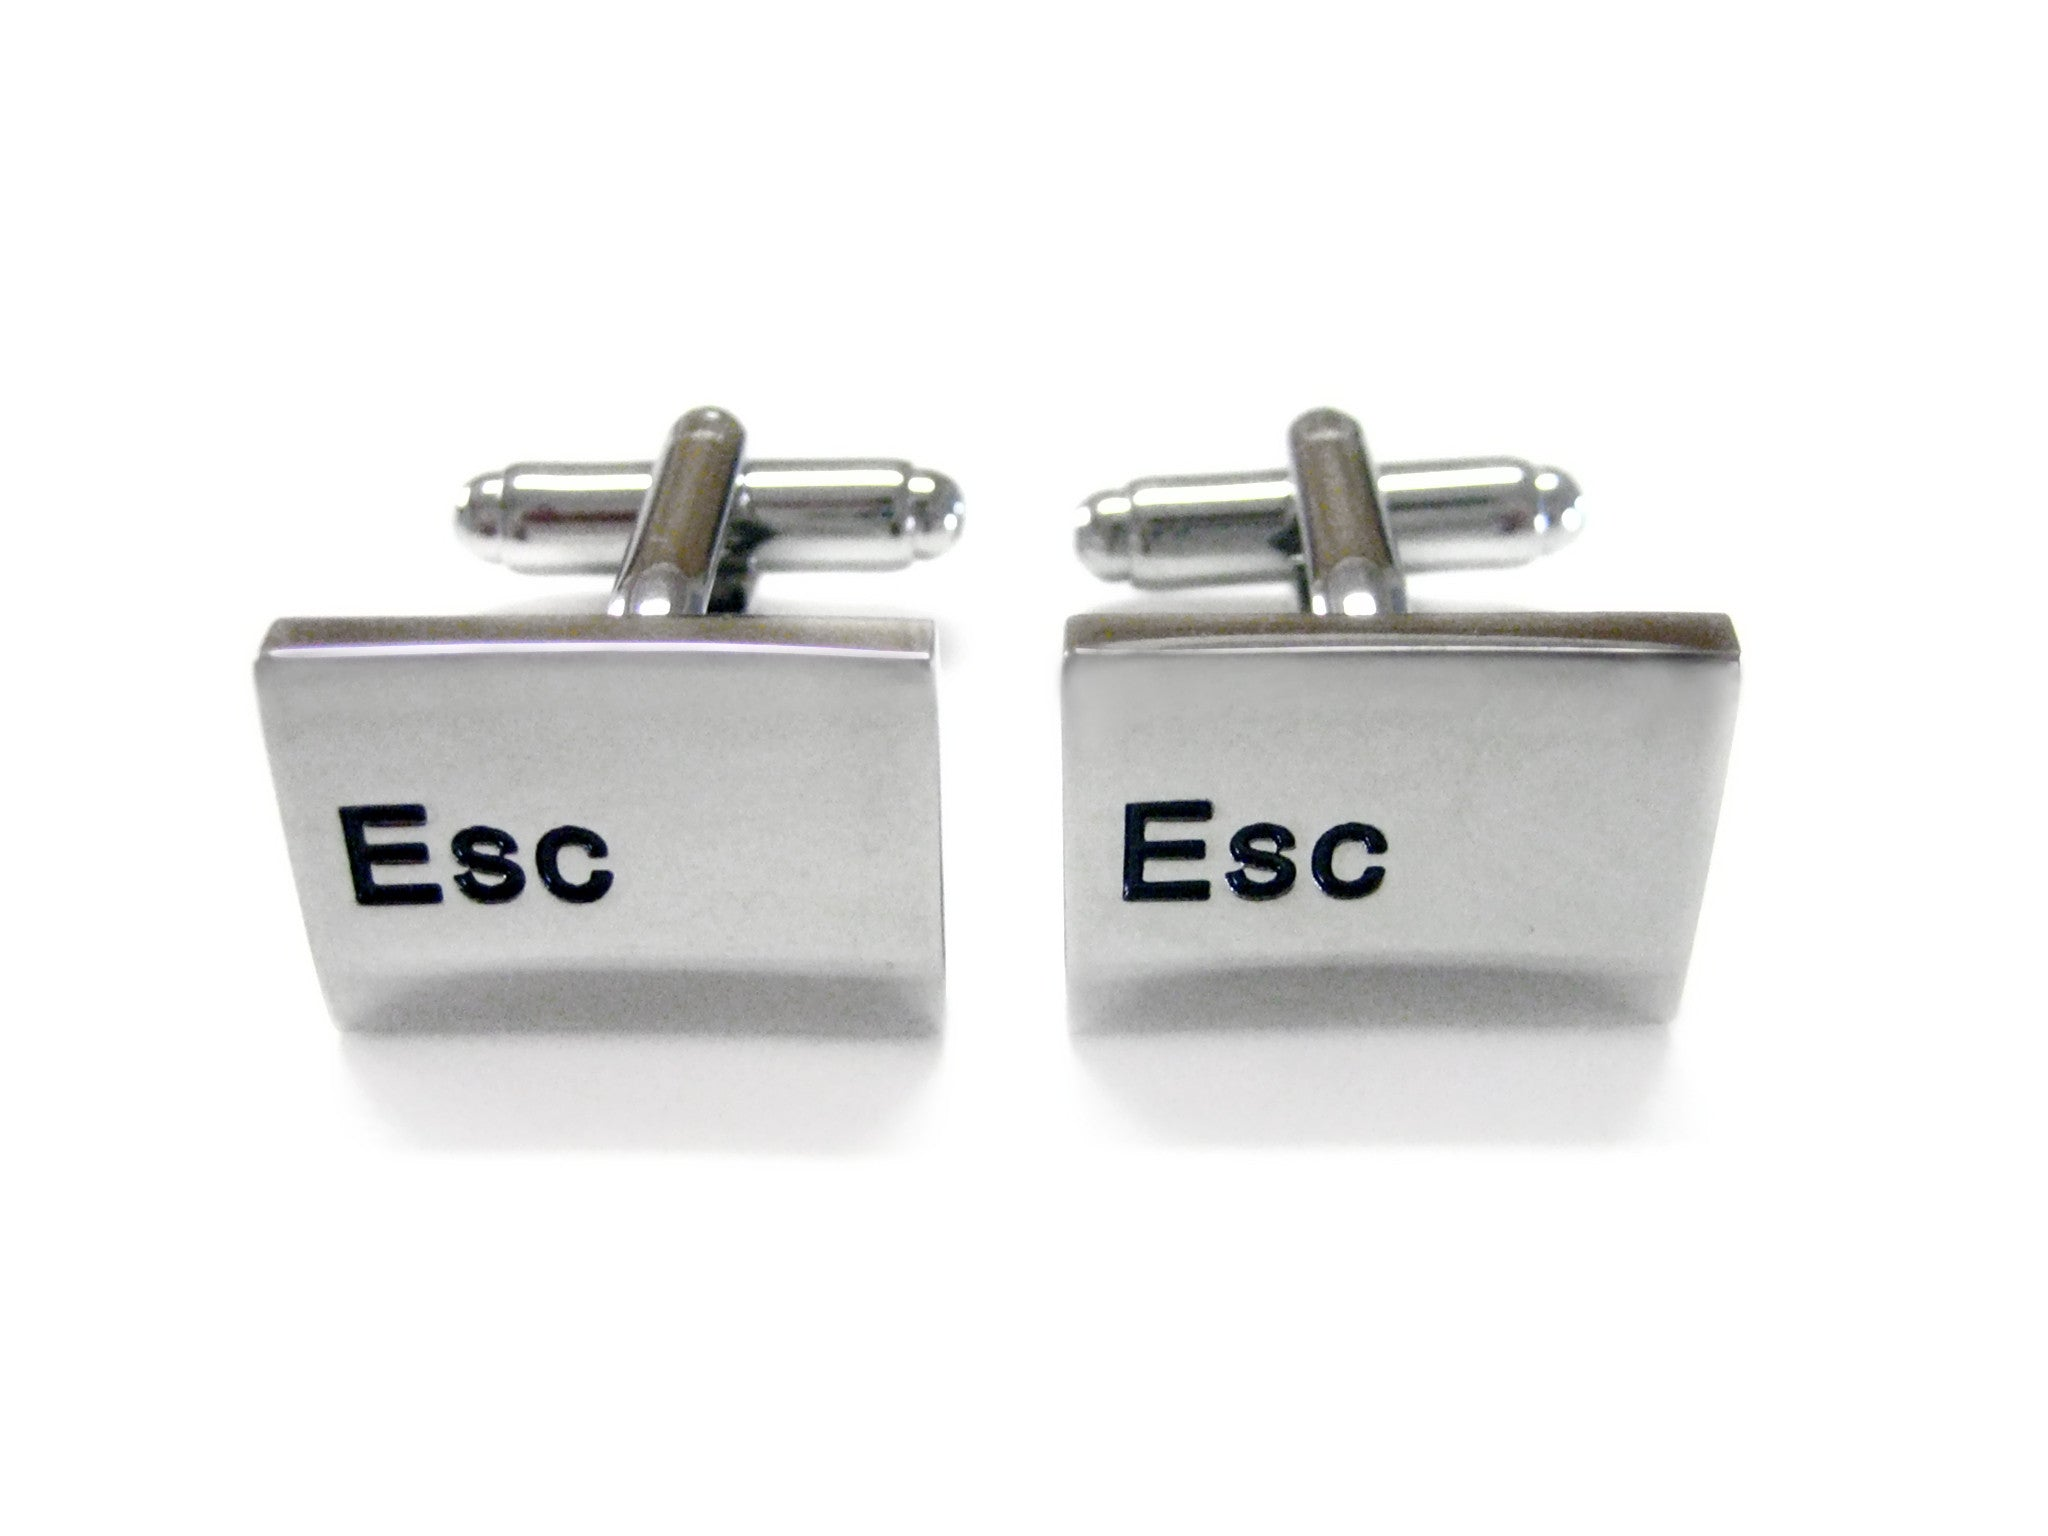 Esc Key Keyboard Cufflinks